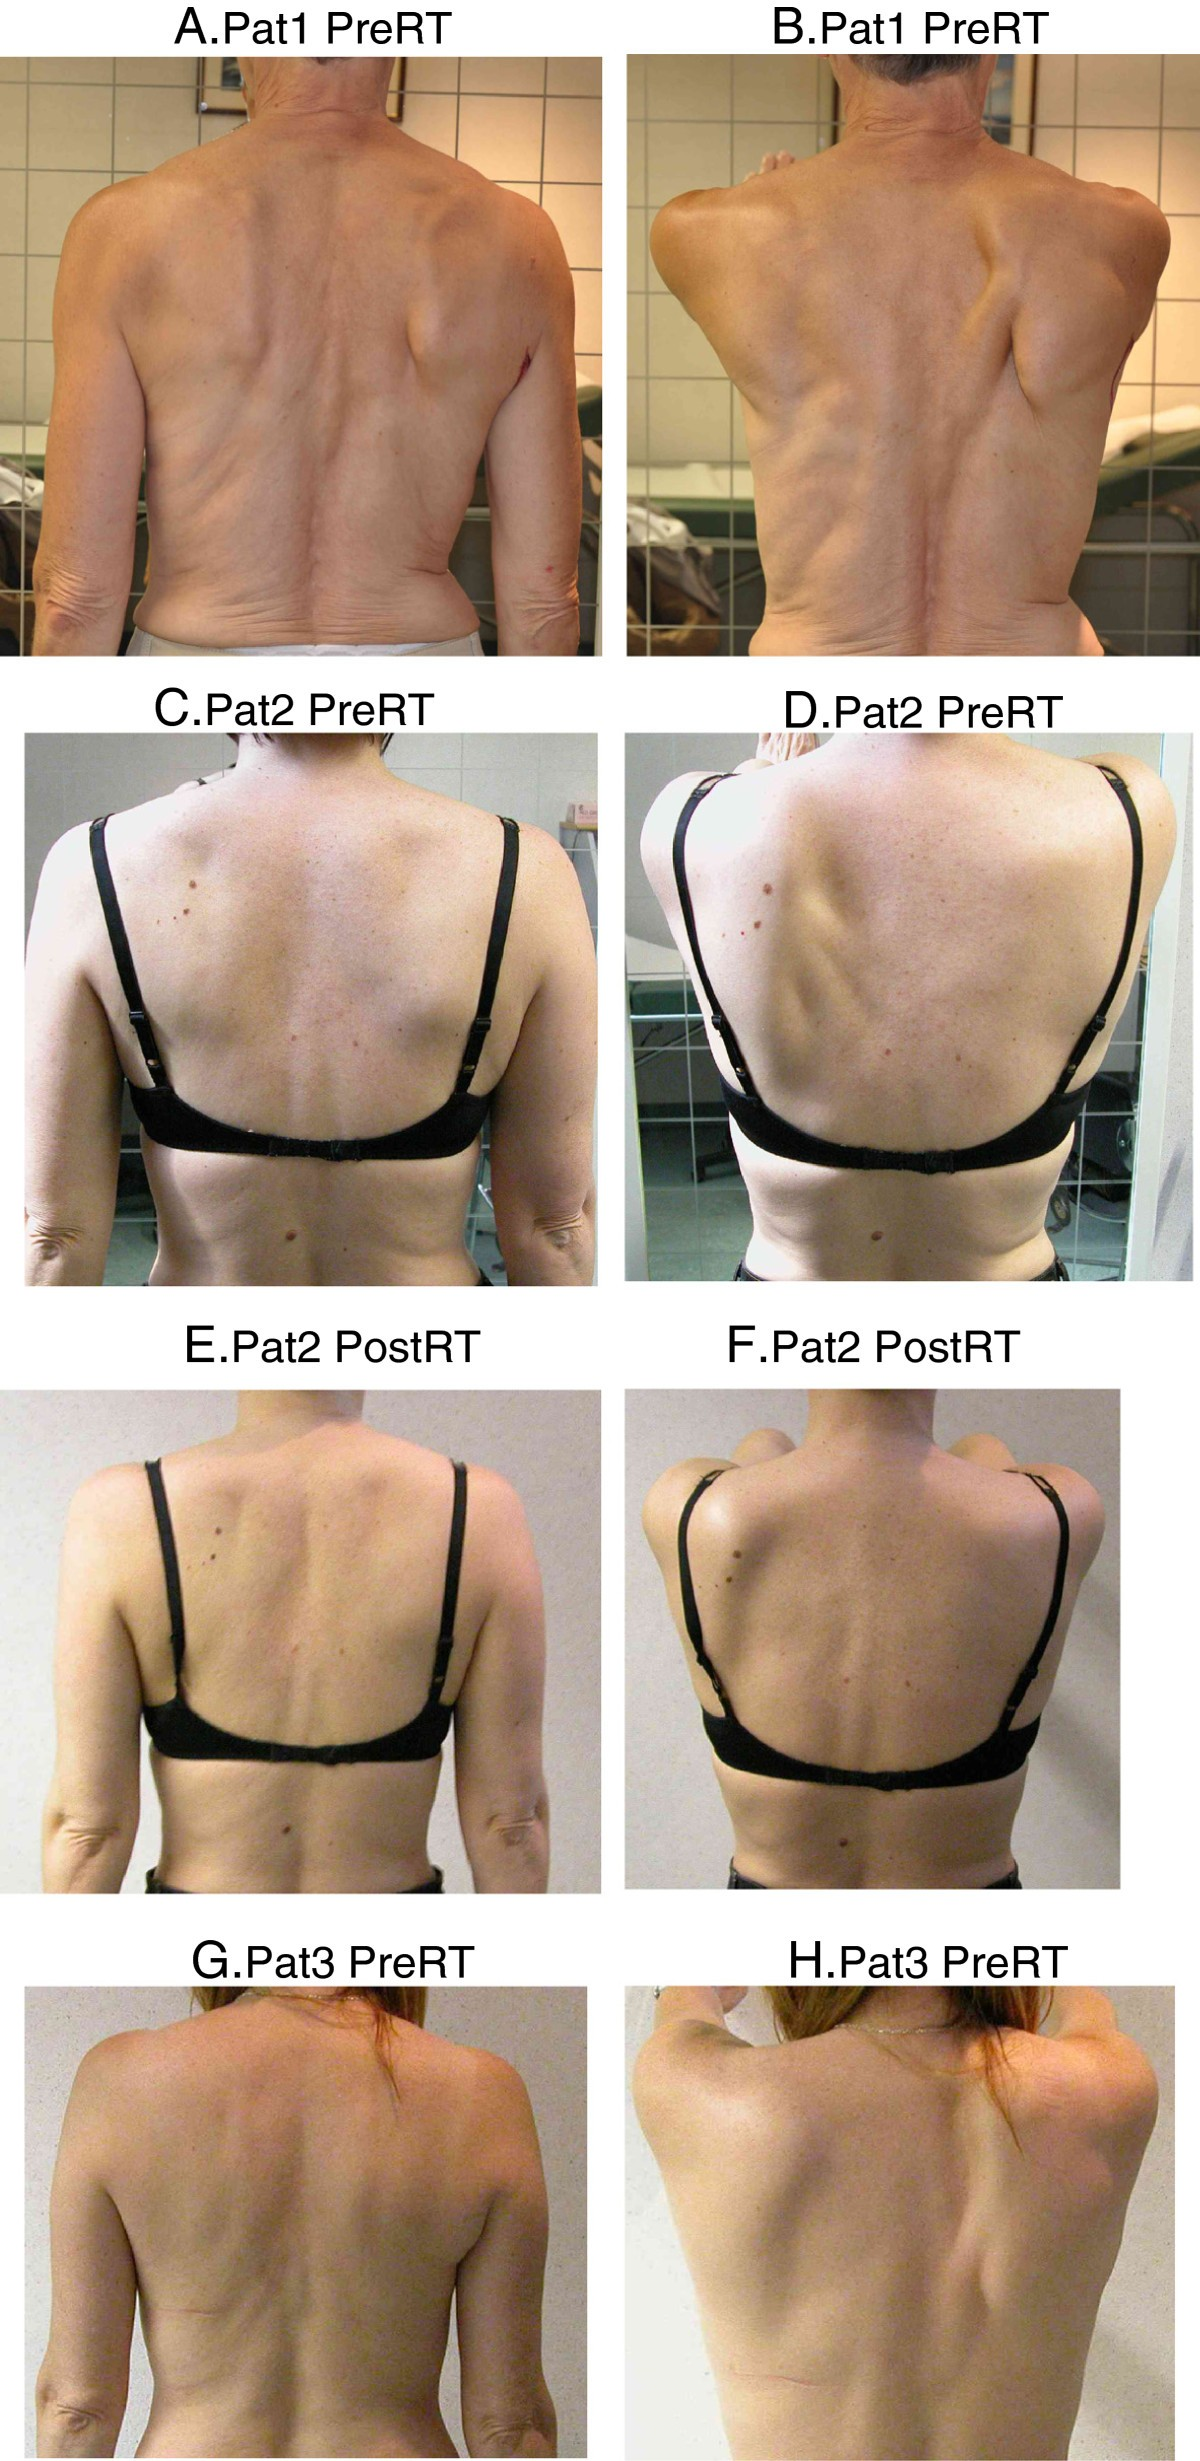 Scapula Alata In Early Breast Cancer Patients Enrolled In